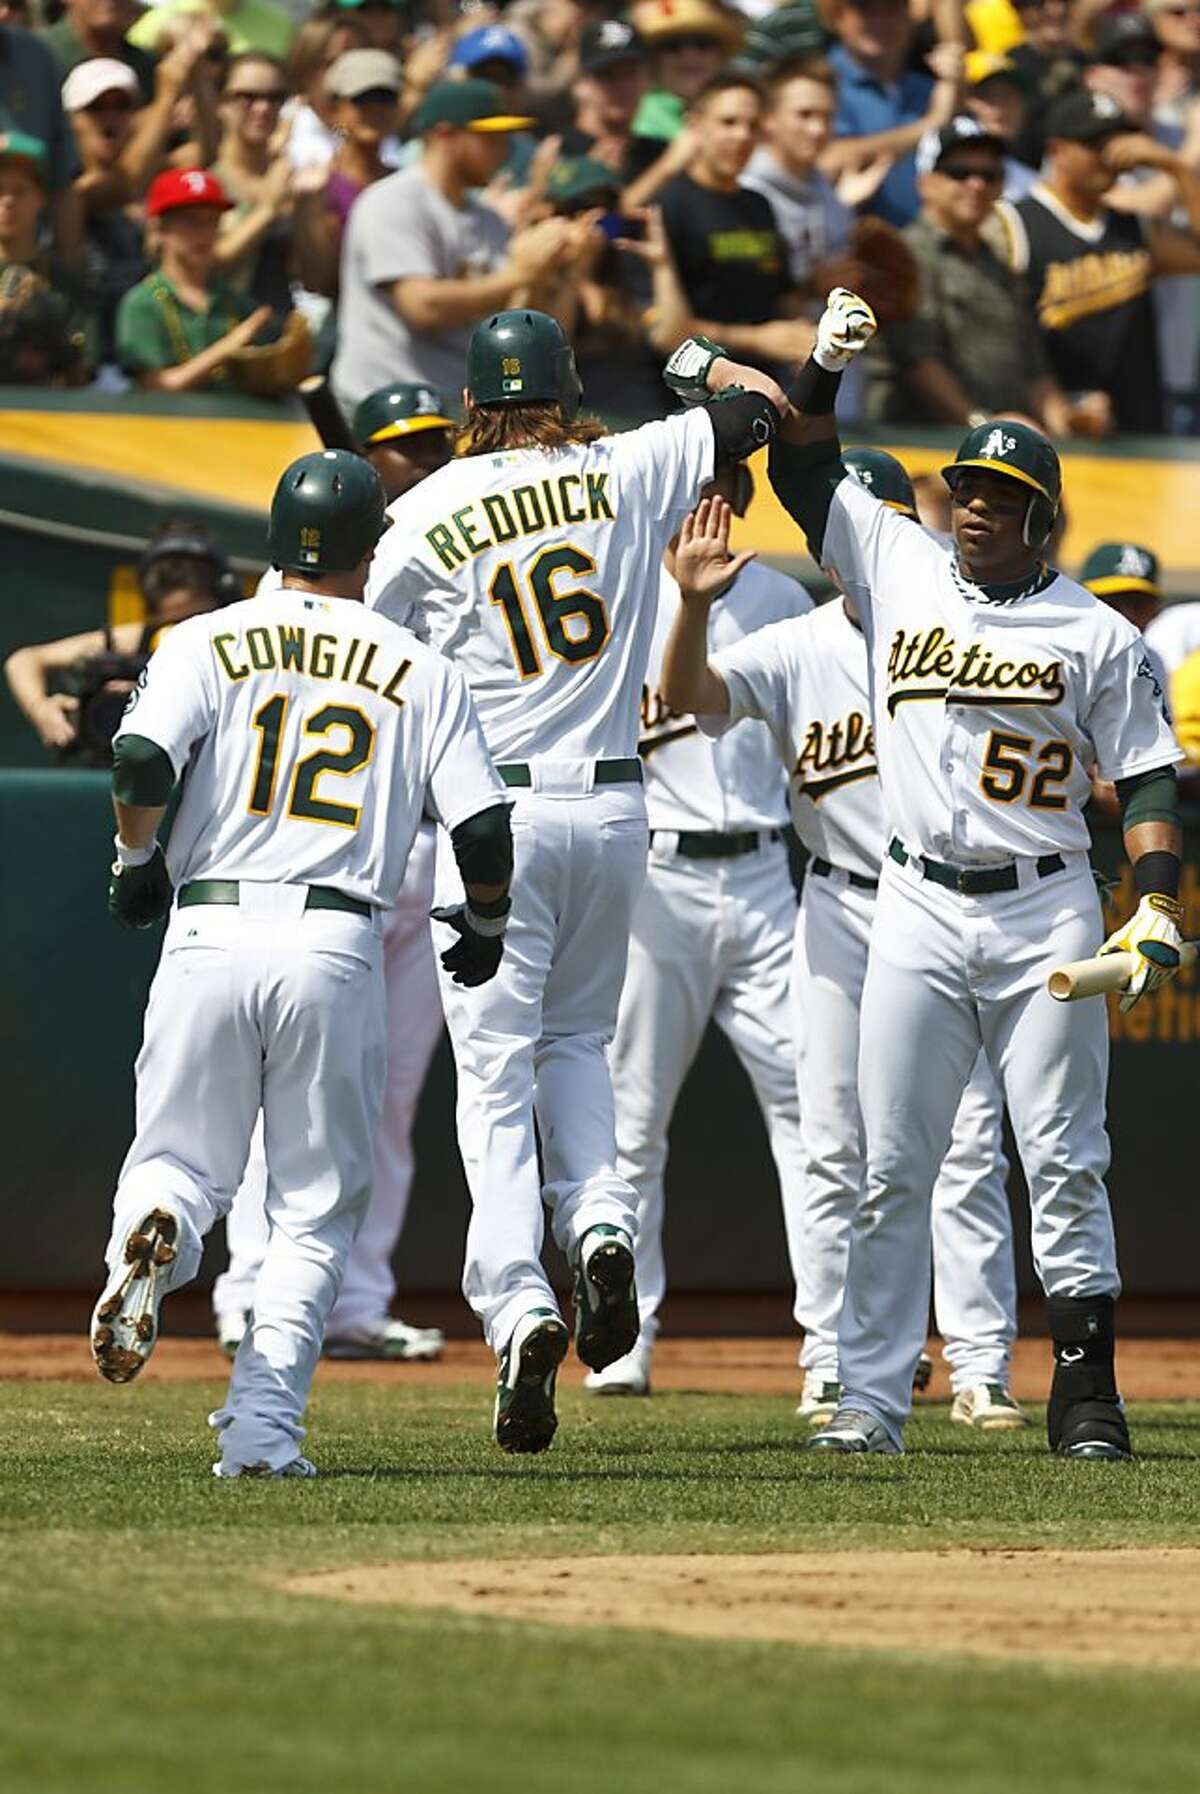 Josh Reddick of the Oakland Athletics is congratulated after hitting a two run home run against the Orioles on Sept. 16th. No one expected a team with a collective .236 batting average and the second-lowest team payroll, the one picked by sportswriters to finish dead last, to put up a fight this season.